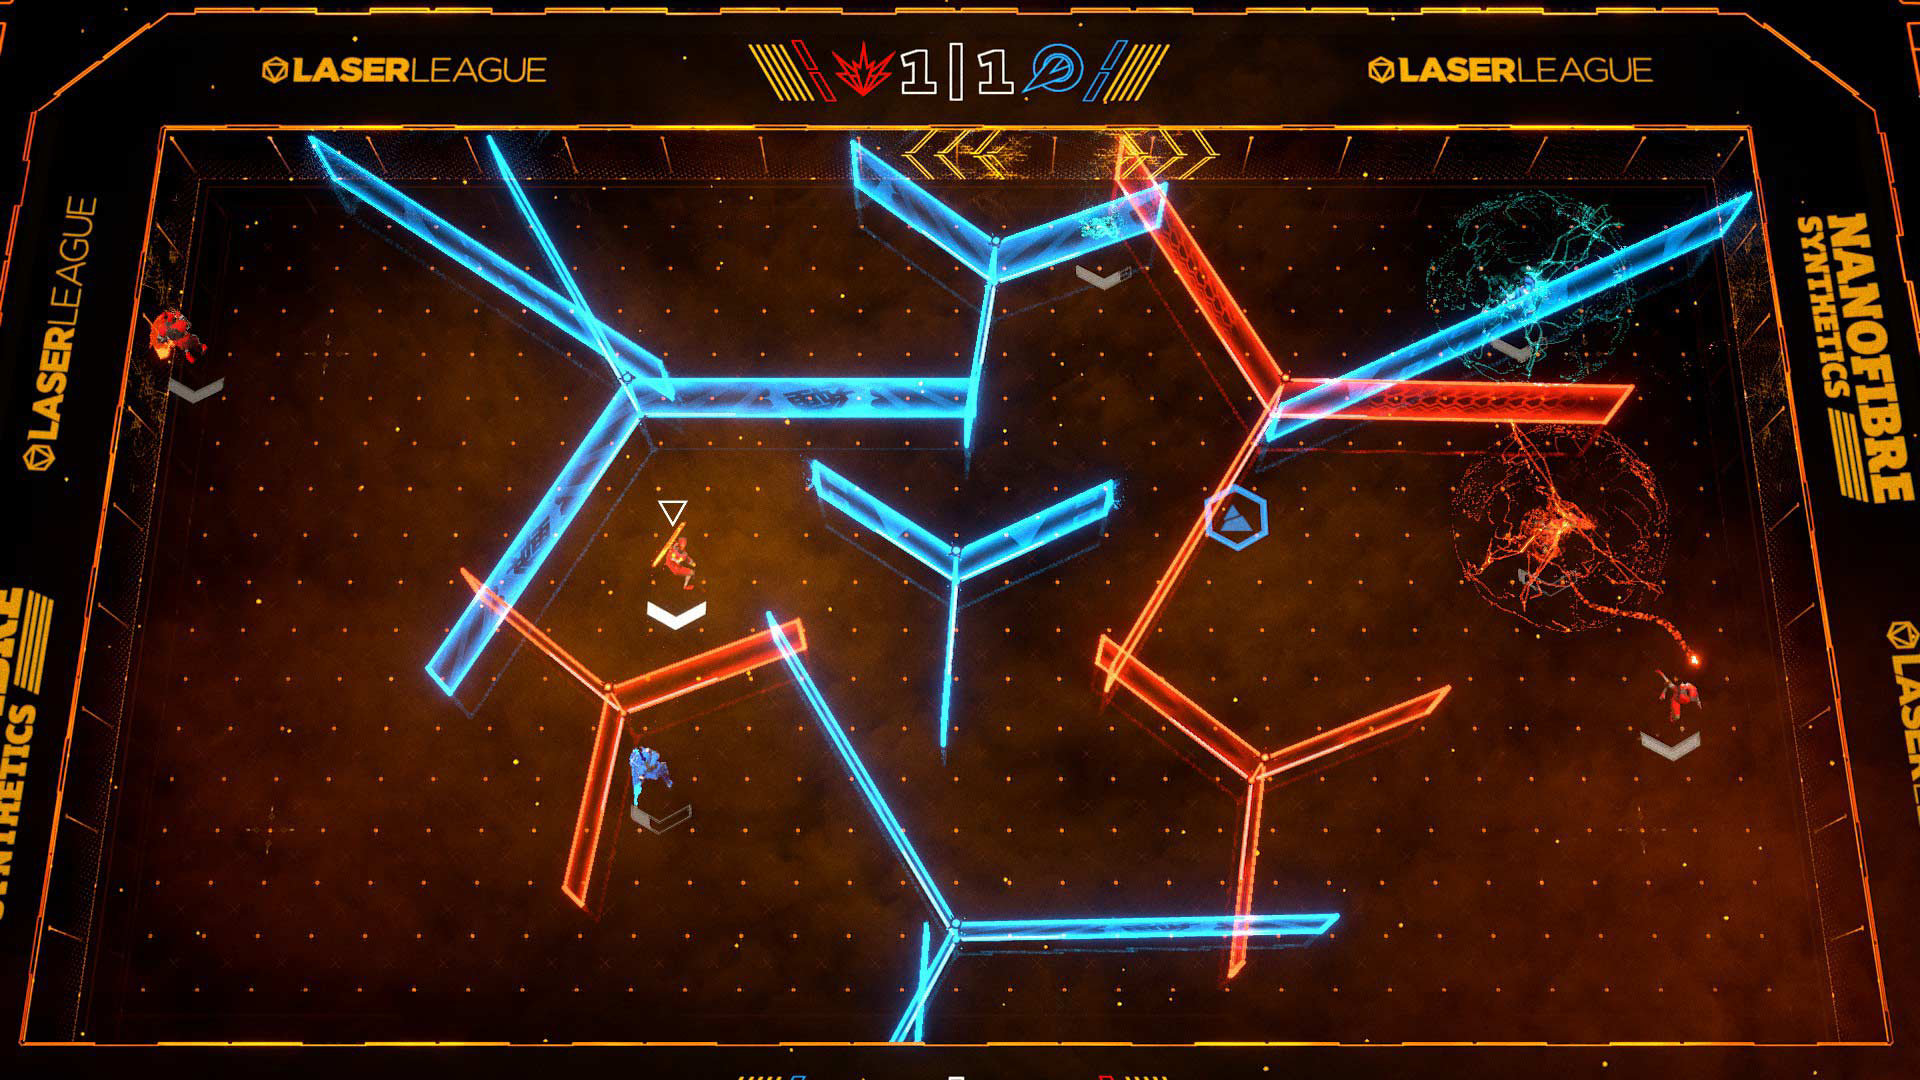 Laser League Game Ps4 Playstation How To Repair Your Plasystation 3 Screenshot 2